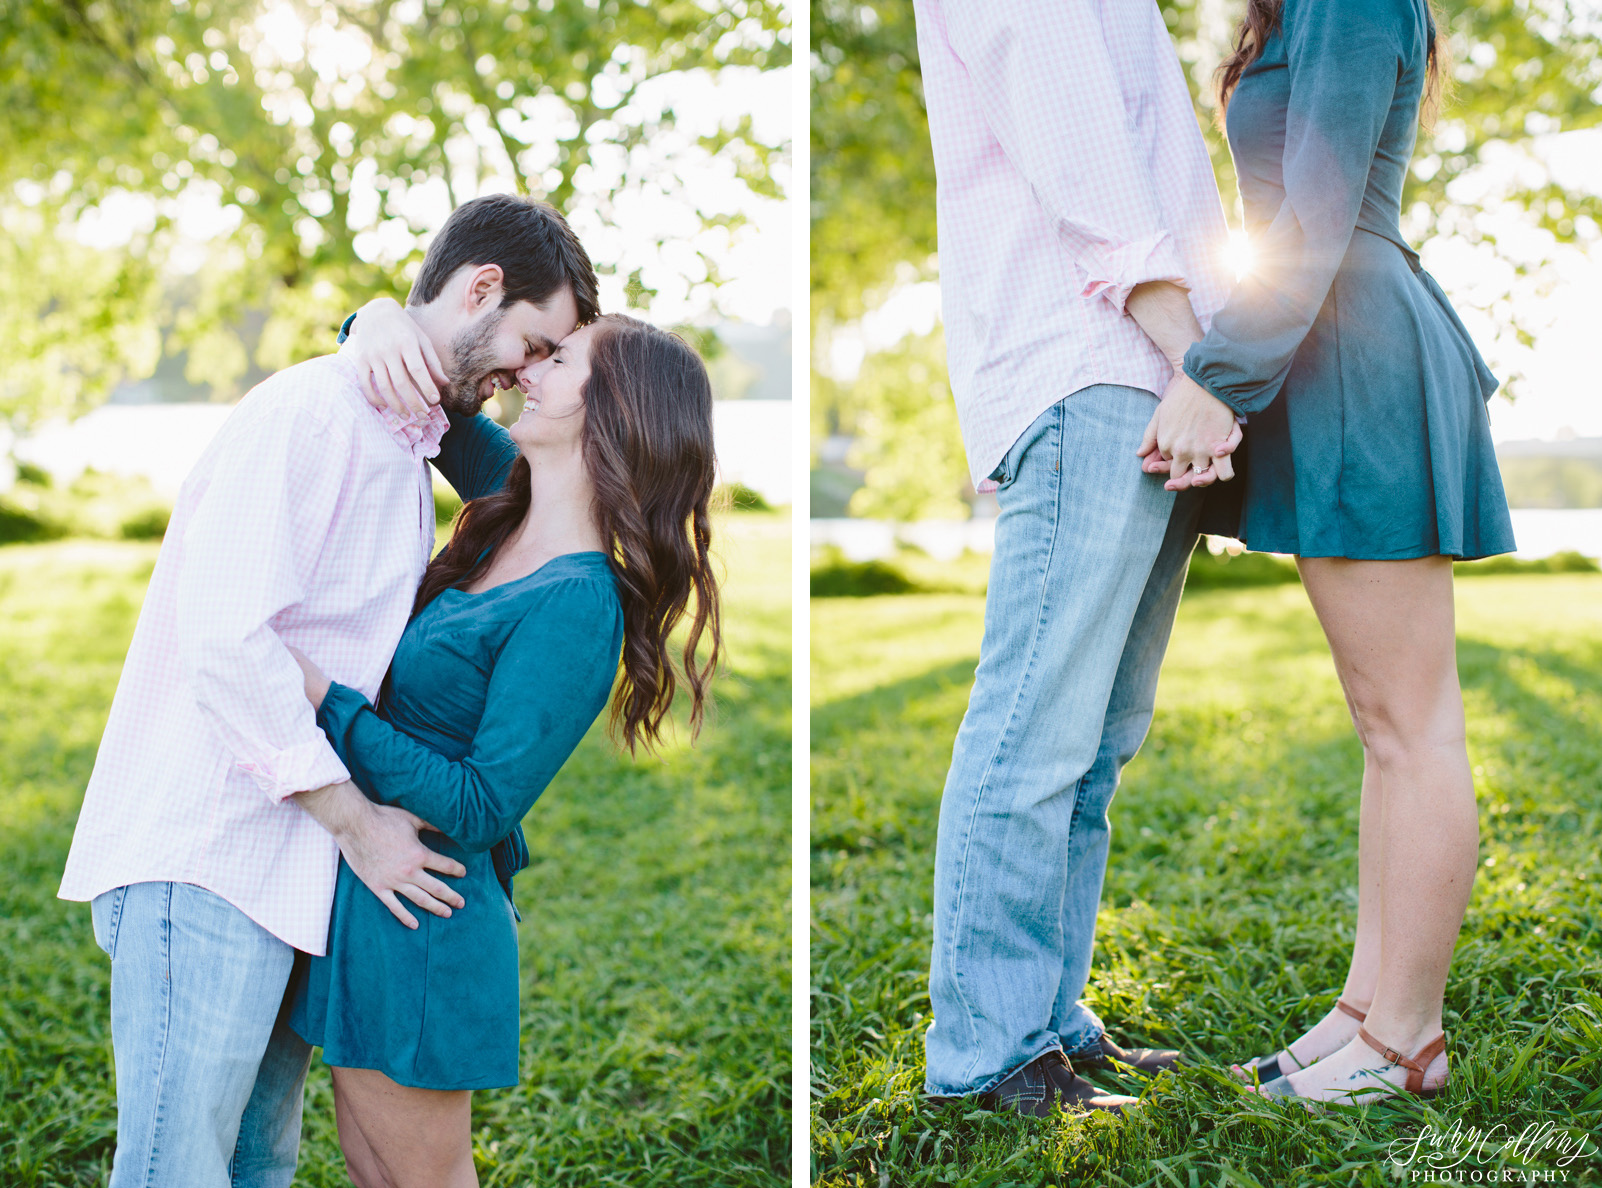 poses, couples, outdoor, Sequoyah hills, Knoxville, Tennessee, engagement, sunset, evening, love, vibrant, colorful, bright, creative, romantic, natural, light and airy, natural light, passion, inspiration, intimate, outfits